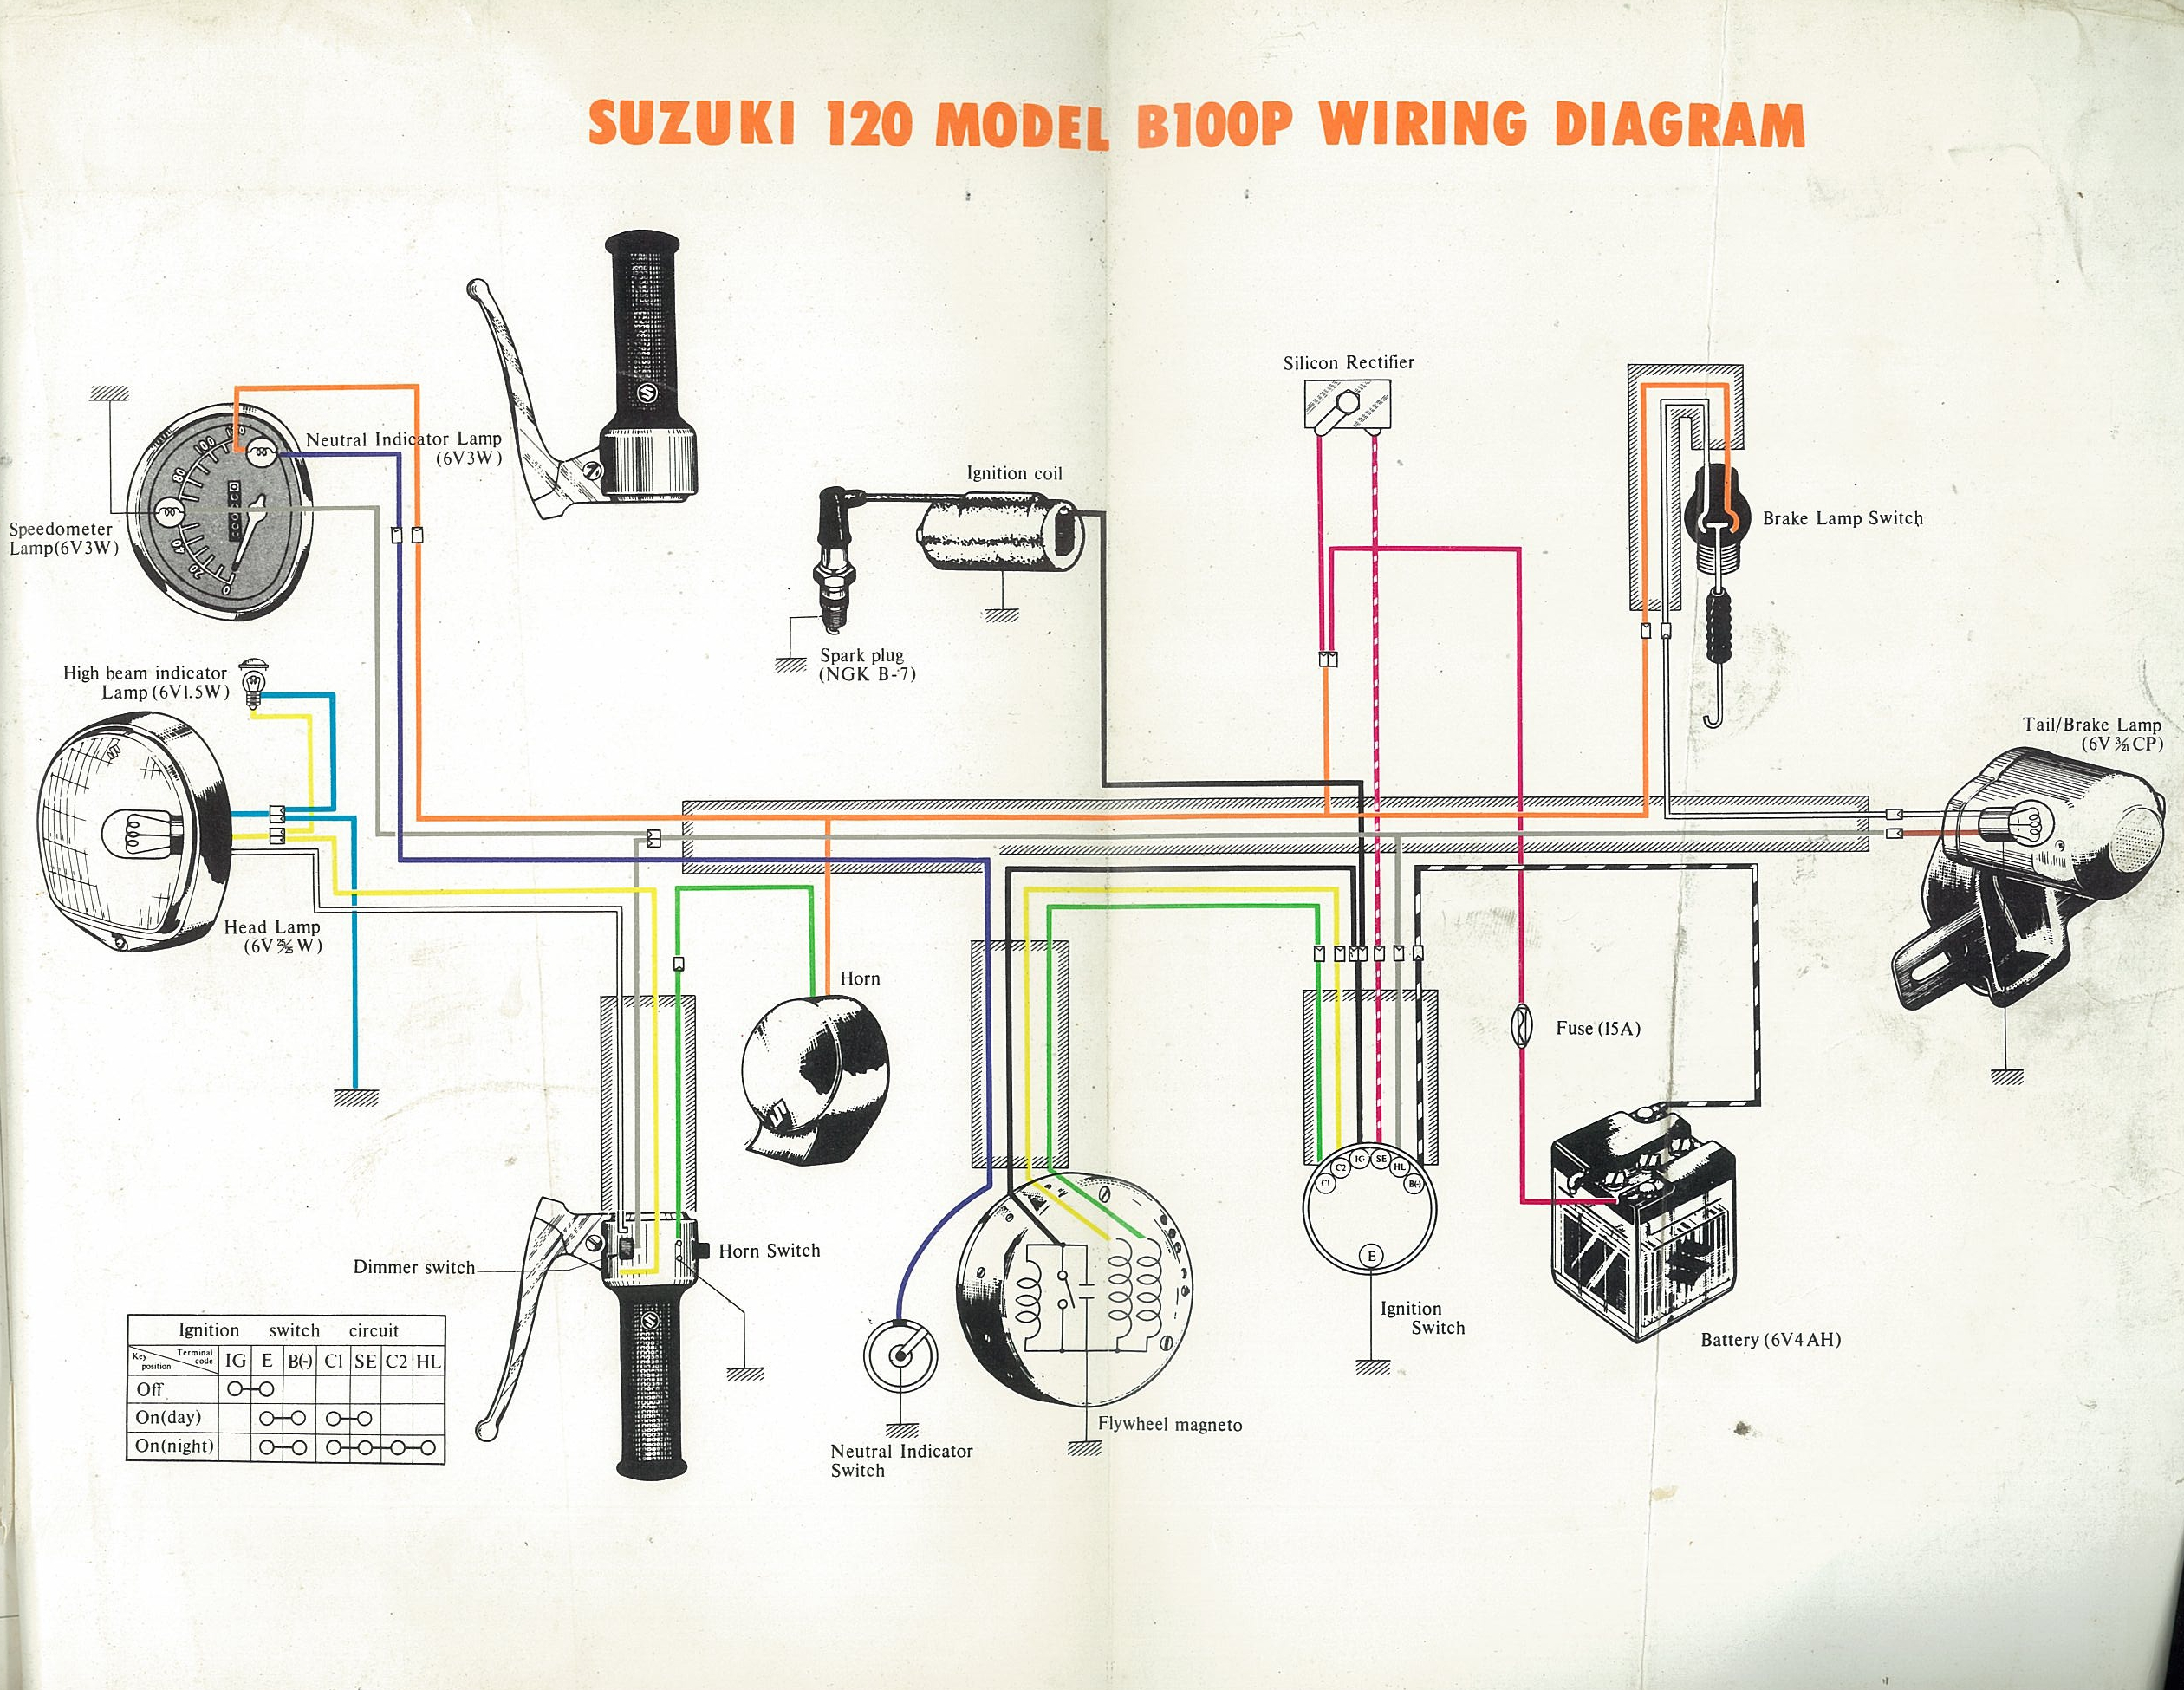 b100p wiring sundial moto sports \u2022 view topic bypassing the ignition key for honda wave 125 electrical wiring diagram at gsmx.co